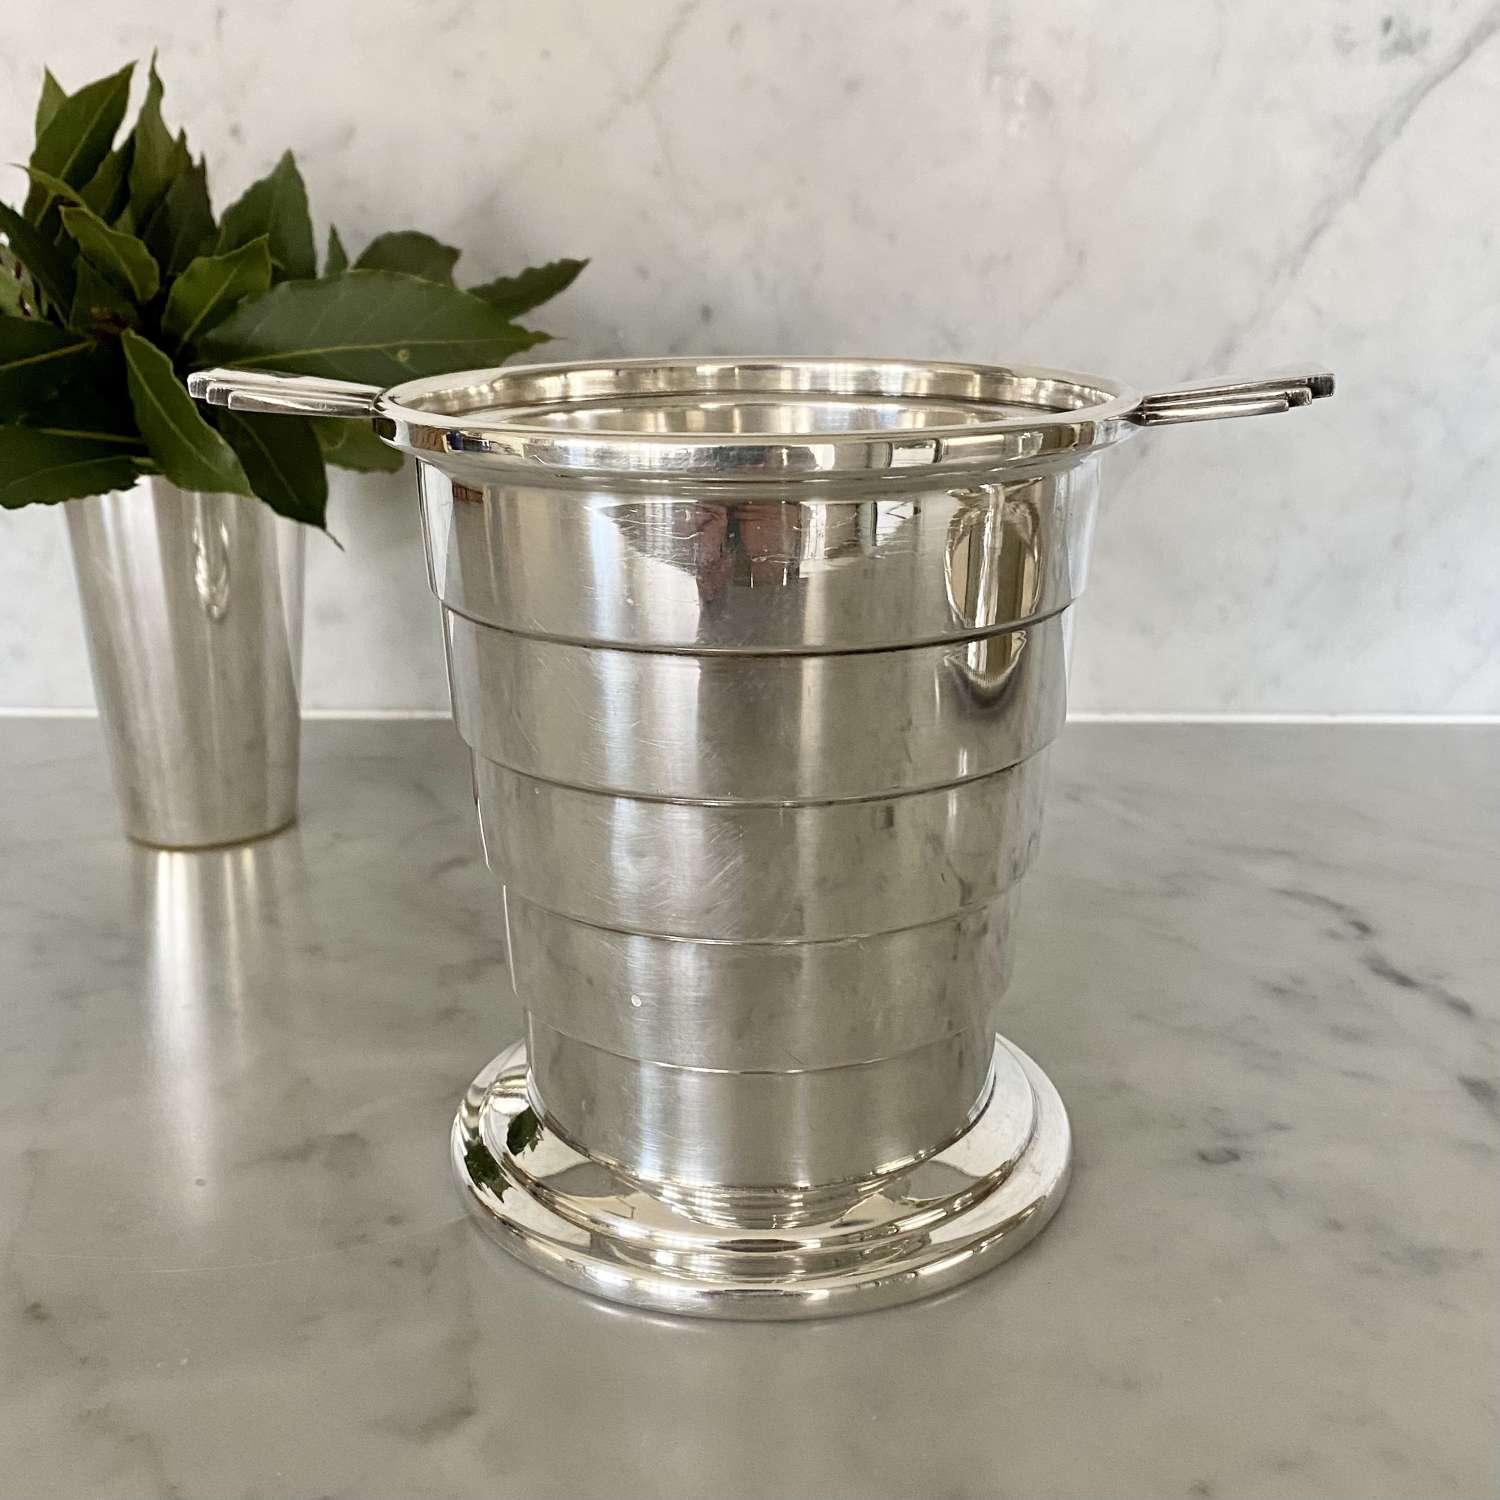 Art Deco geometric English silver plated ice bucket